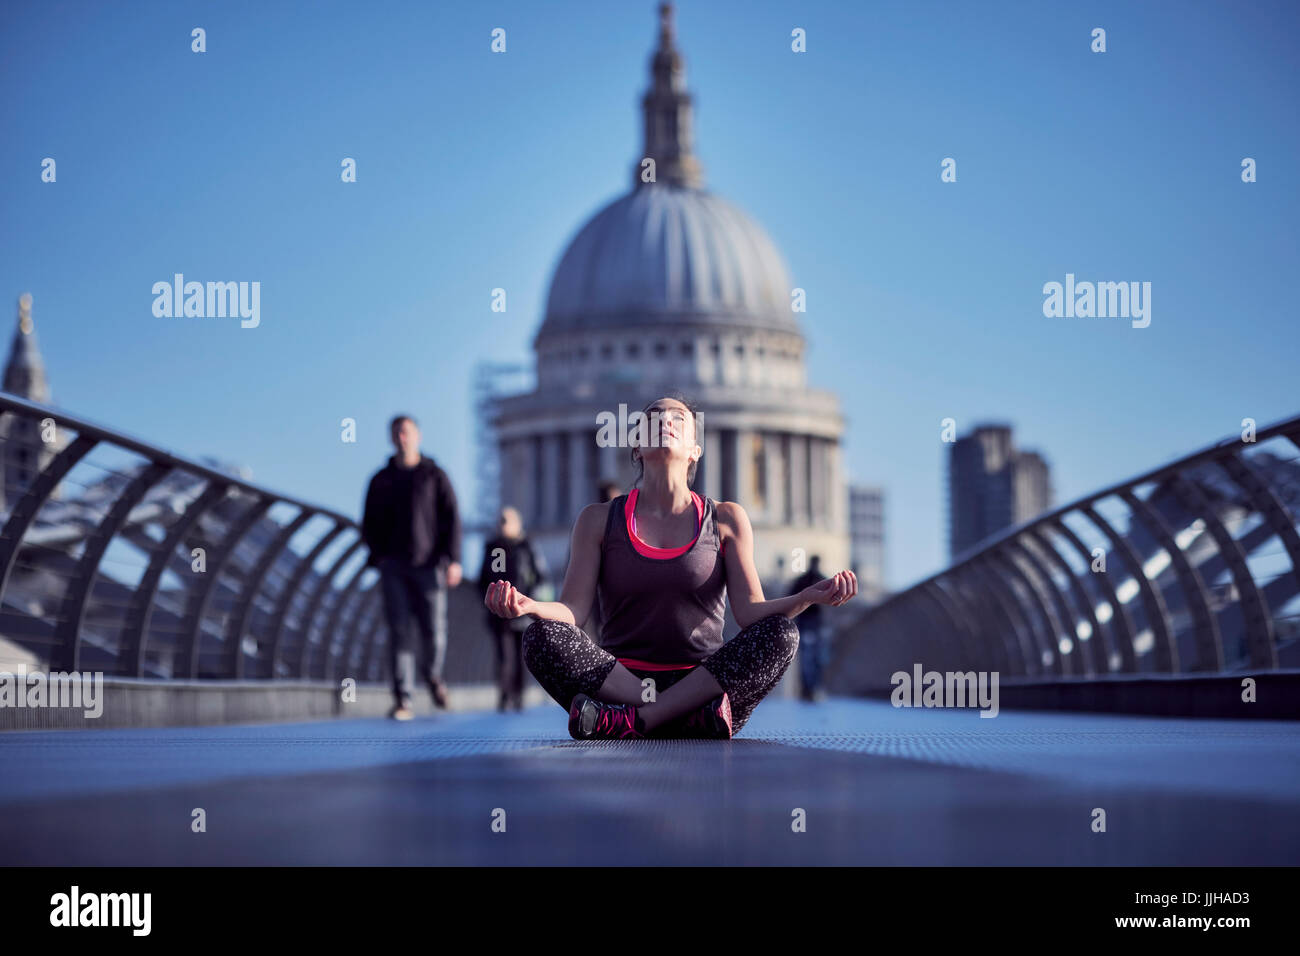 A woman meditating on the Millennium Bridge with St Paul's Cathedral in the background. - Stock Image